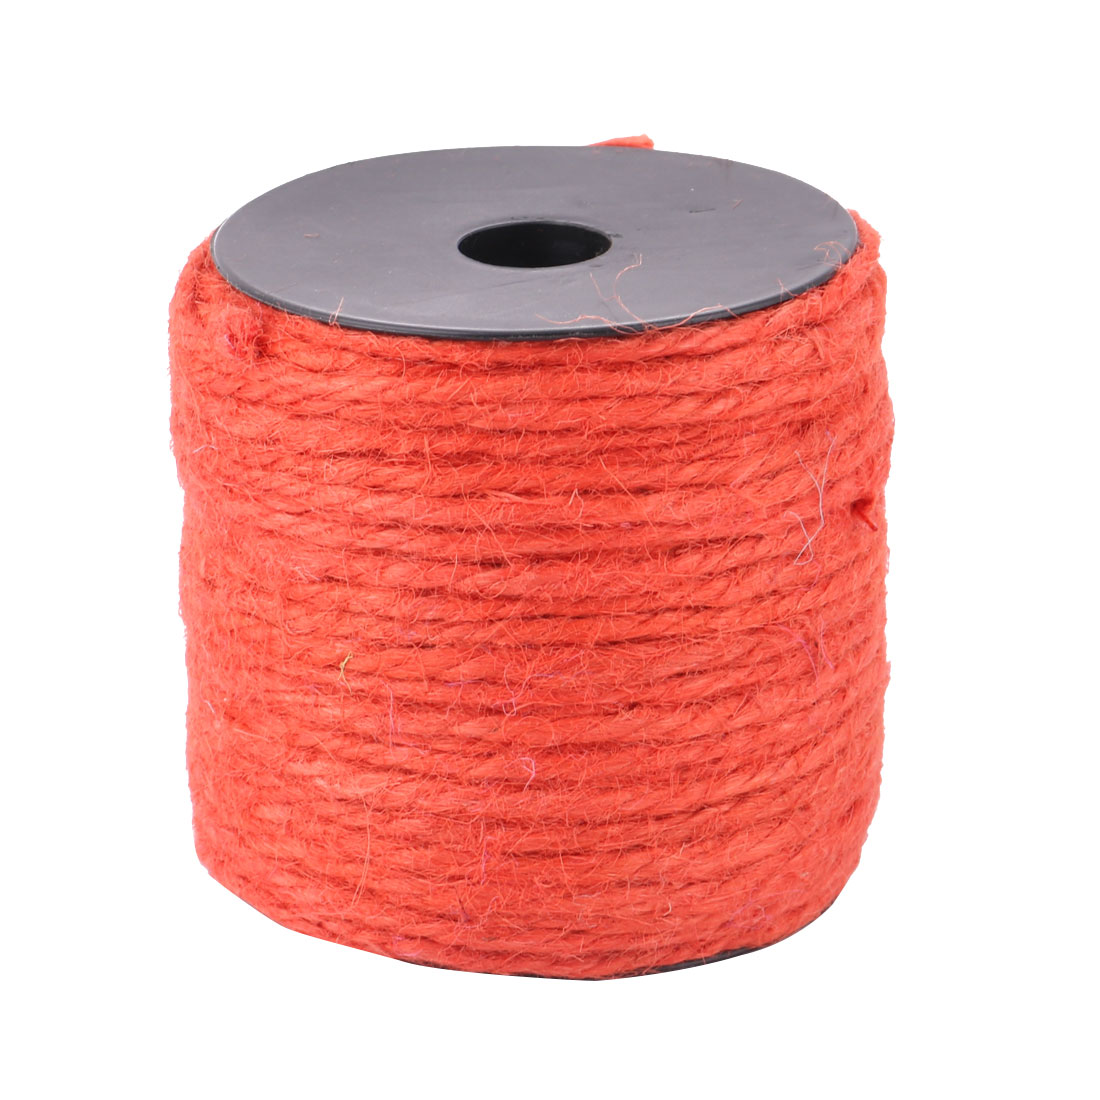 Party Festival Gift Wrapping Crafts Burlap String Ribbon Roll Orange 50M Length